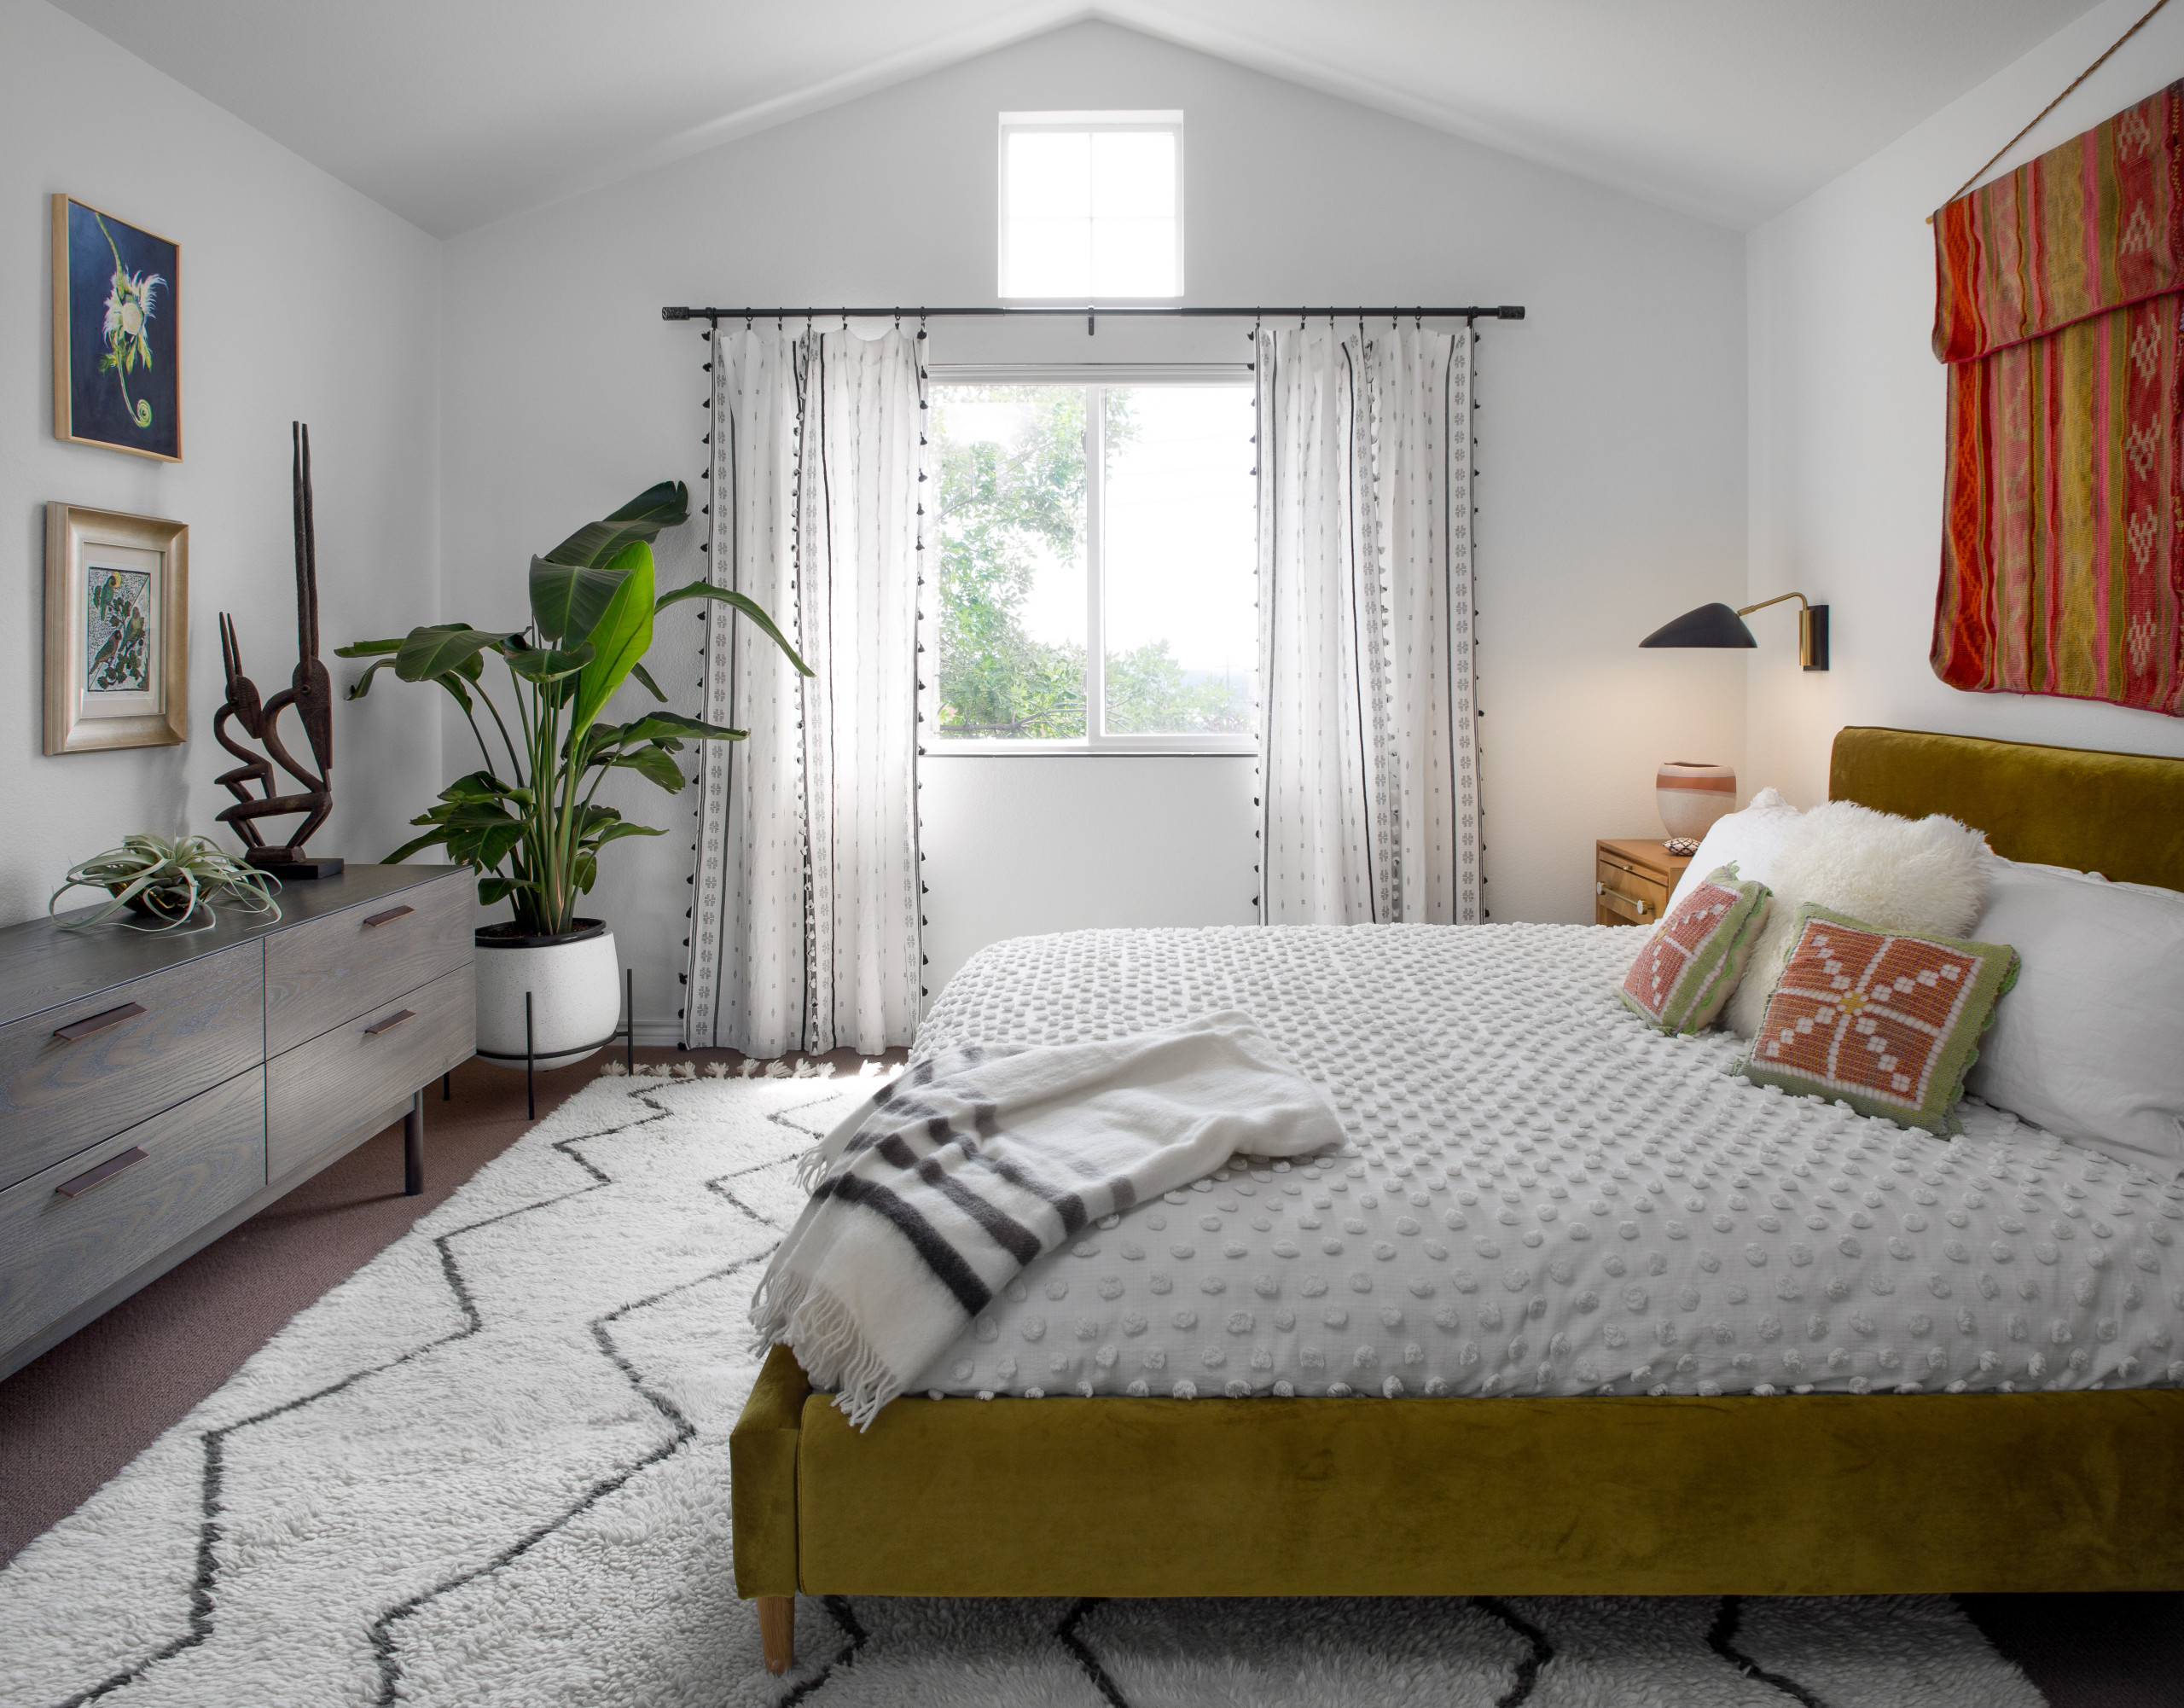 Ah, the bedroom! With our tight budget, we opted to keep the original berber carpet and add an area rug. We ordered the chartreuse velvet bed from Interior Define. The coverlet is from Urban Outfitter